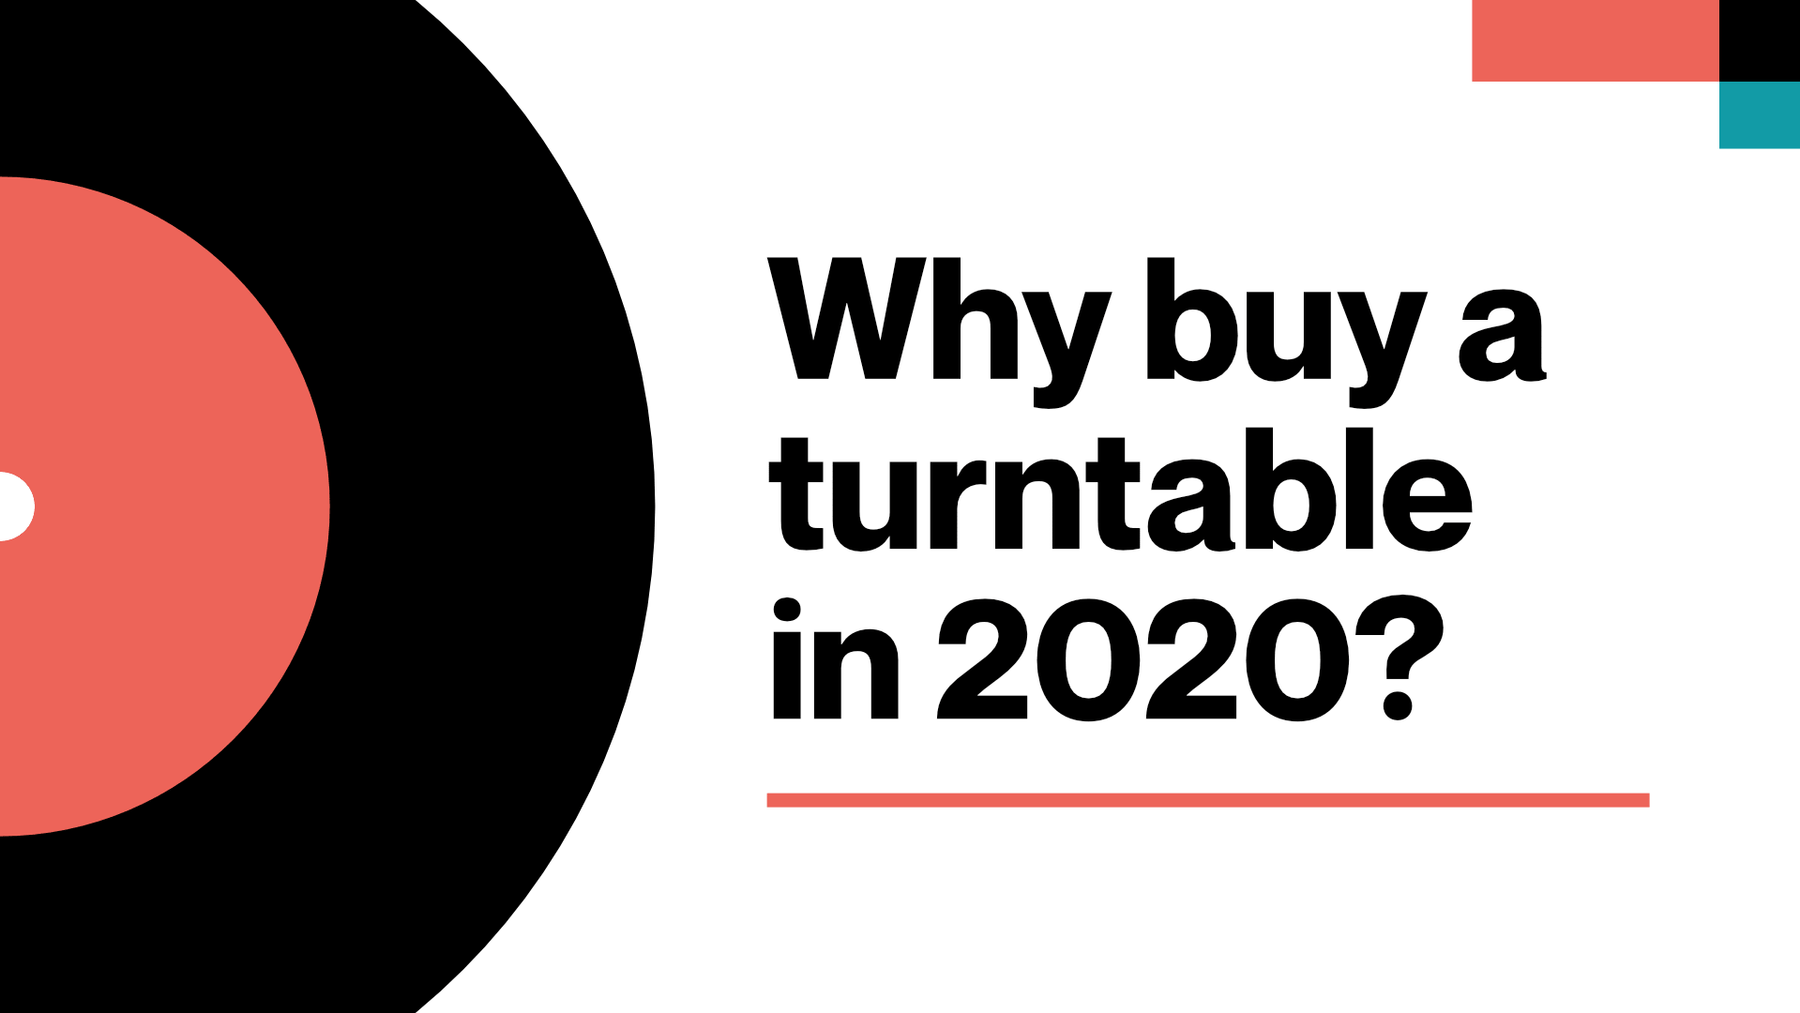 Why buy a turntable in 2020?